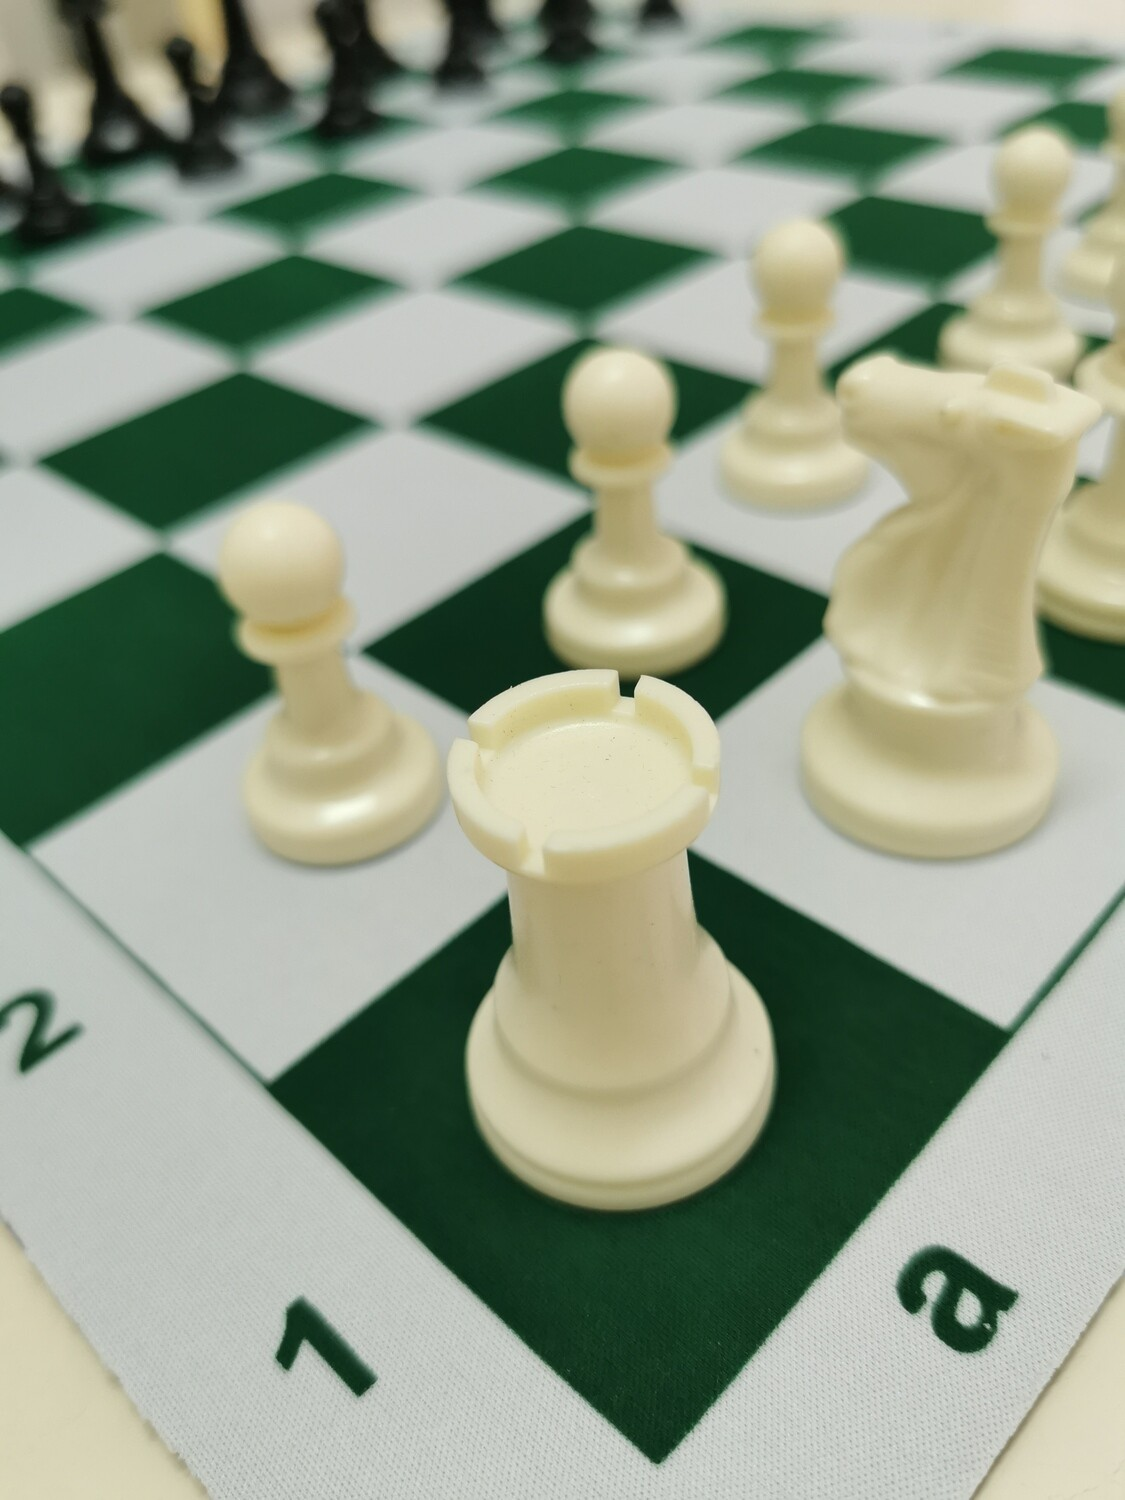 CHESS SET, rubber mat board and plastic pieces with extra Queen.